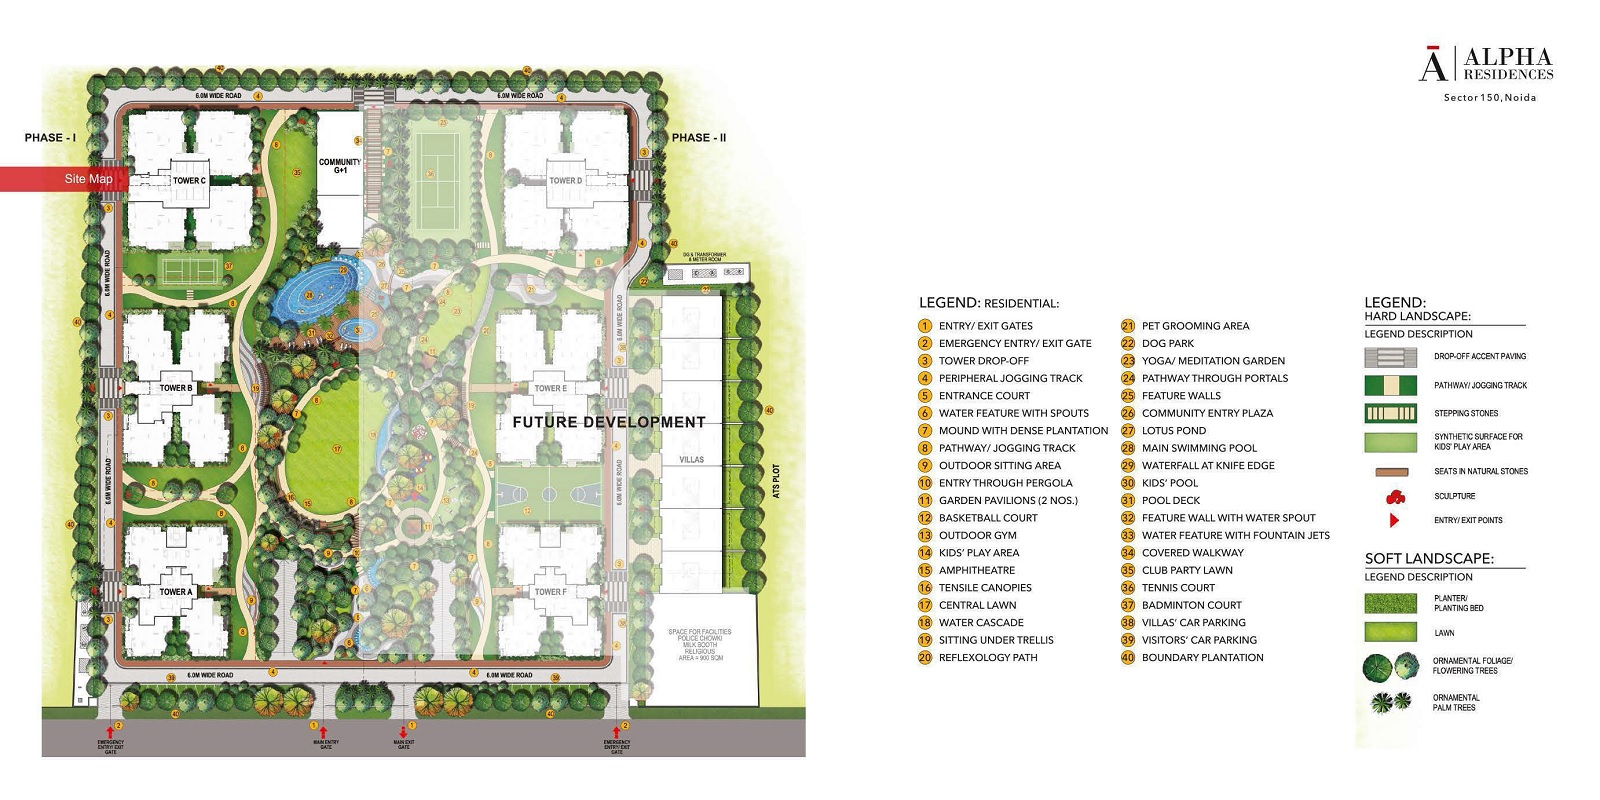 alpha residences project master plan image1